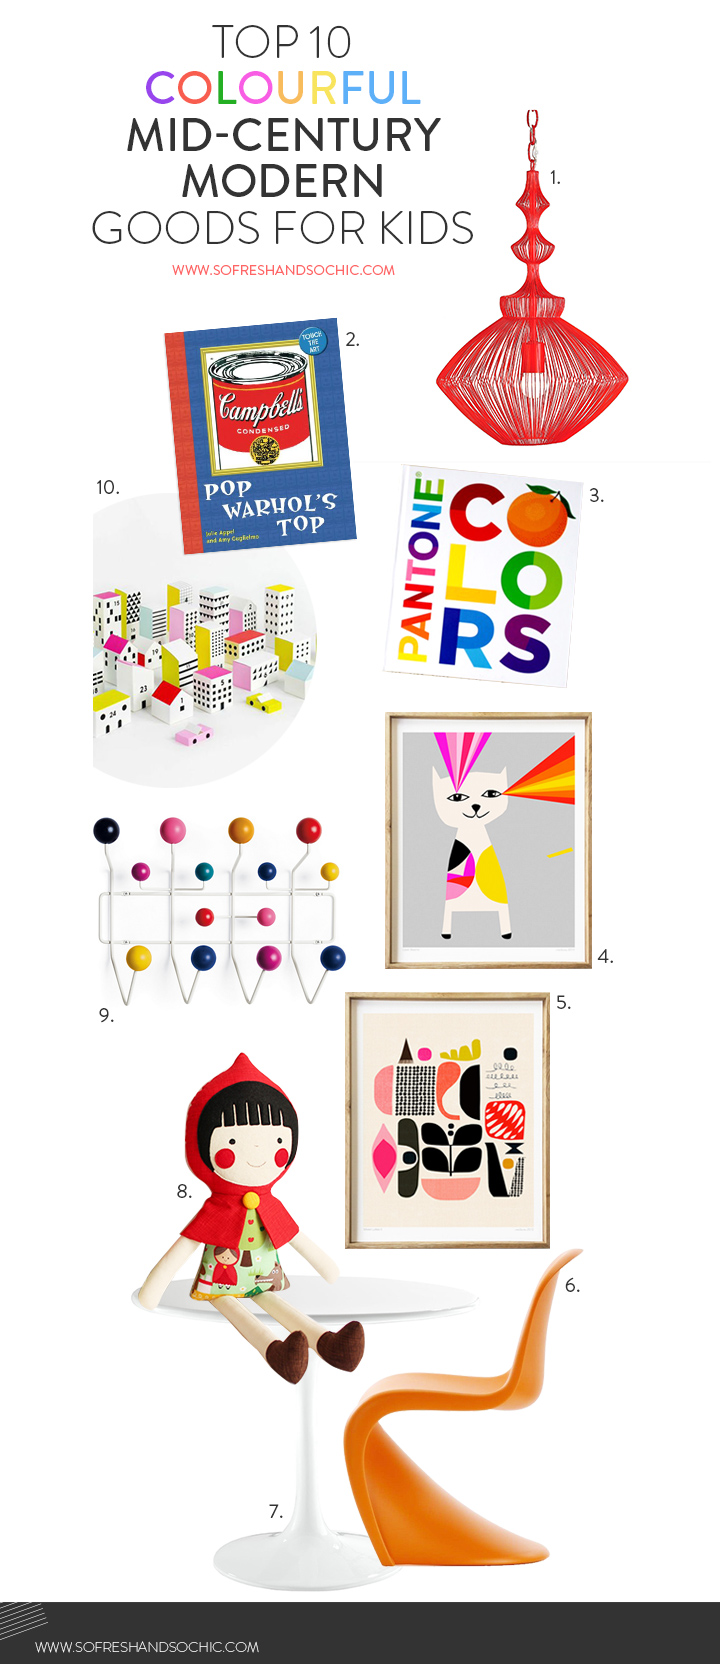 So Fresh and So Chic // Top 10 Colourful Mid-Century Modern GIfts for Kids #midcentyrymodern #giftsforkids #kidsroomdesign #homedecor